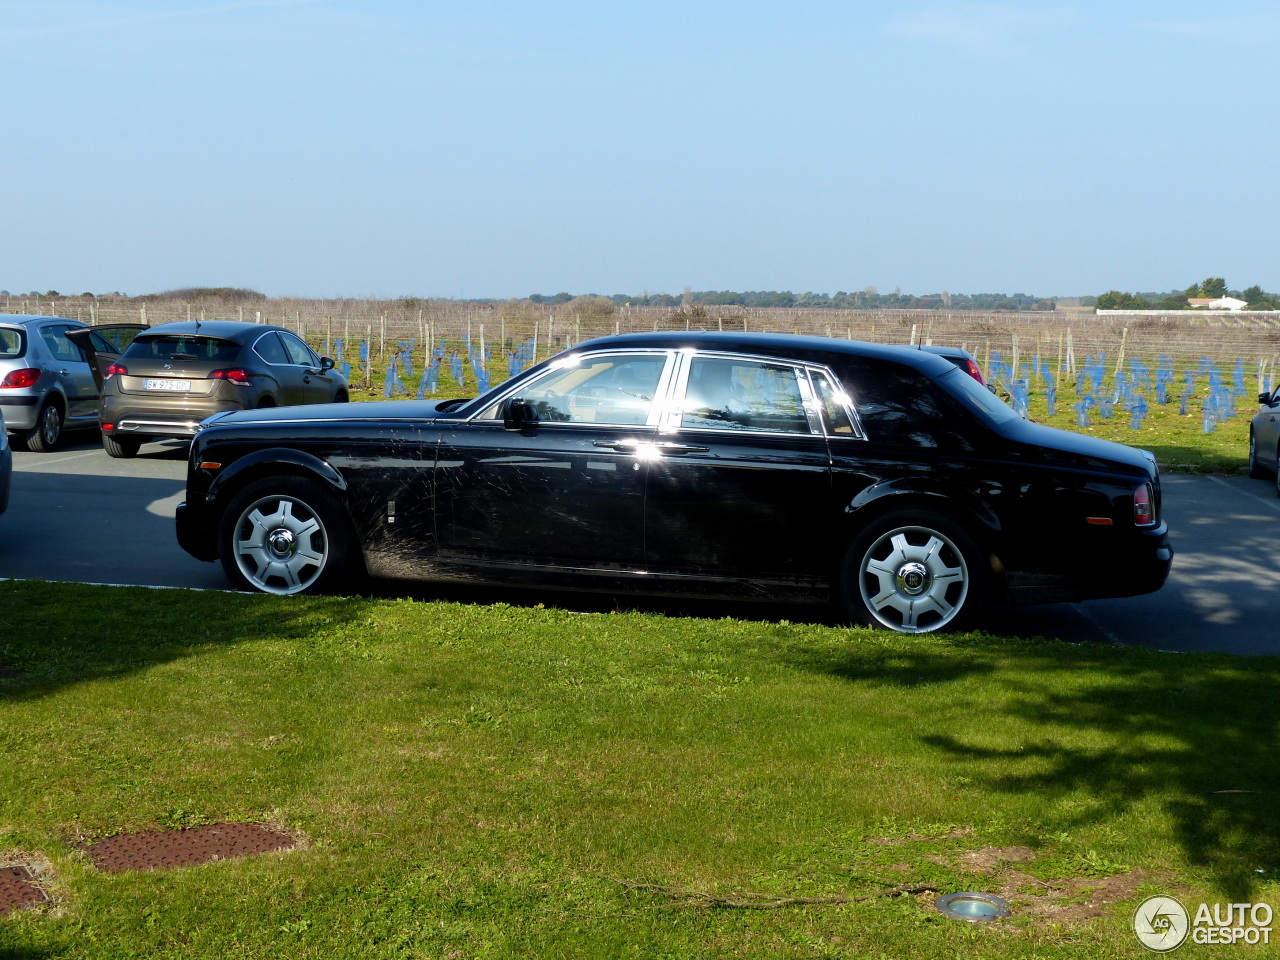 Rolls-Royce Phantom 10